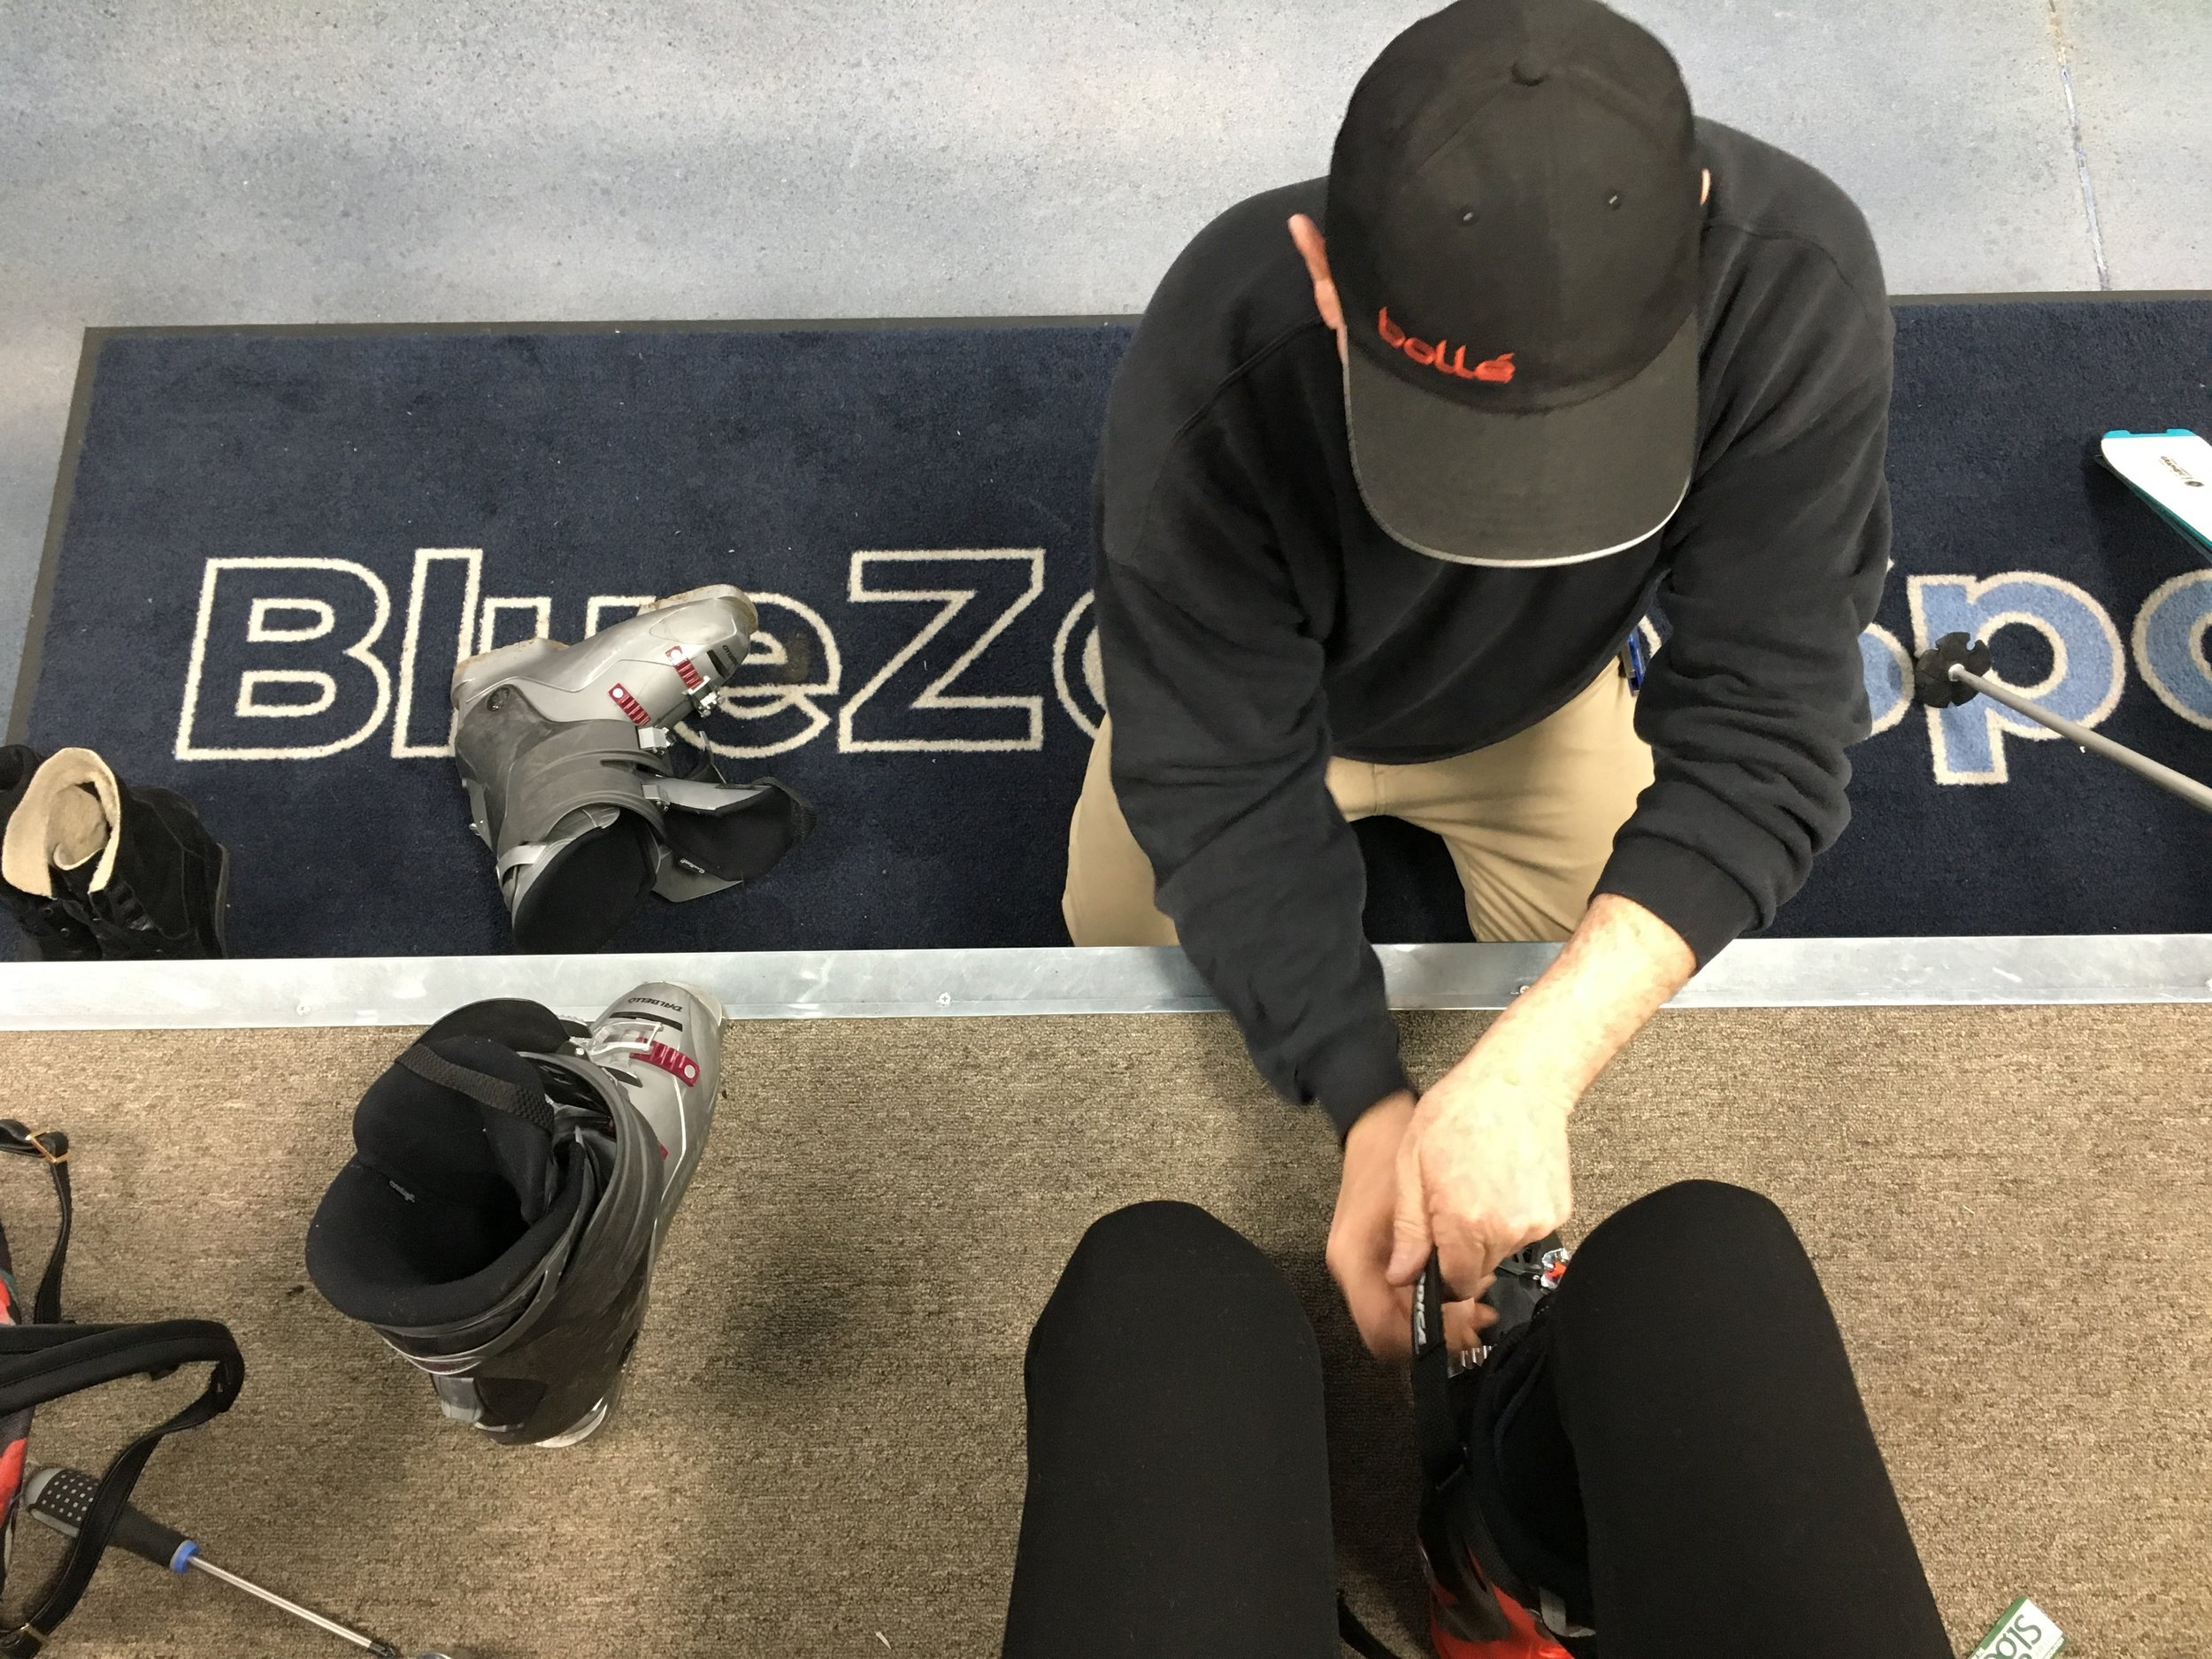 My good friend Bruce fitting my boots and giving me sage advice.